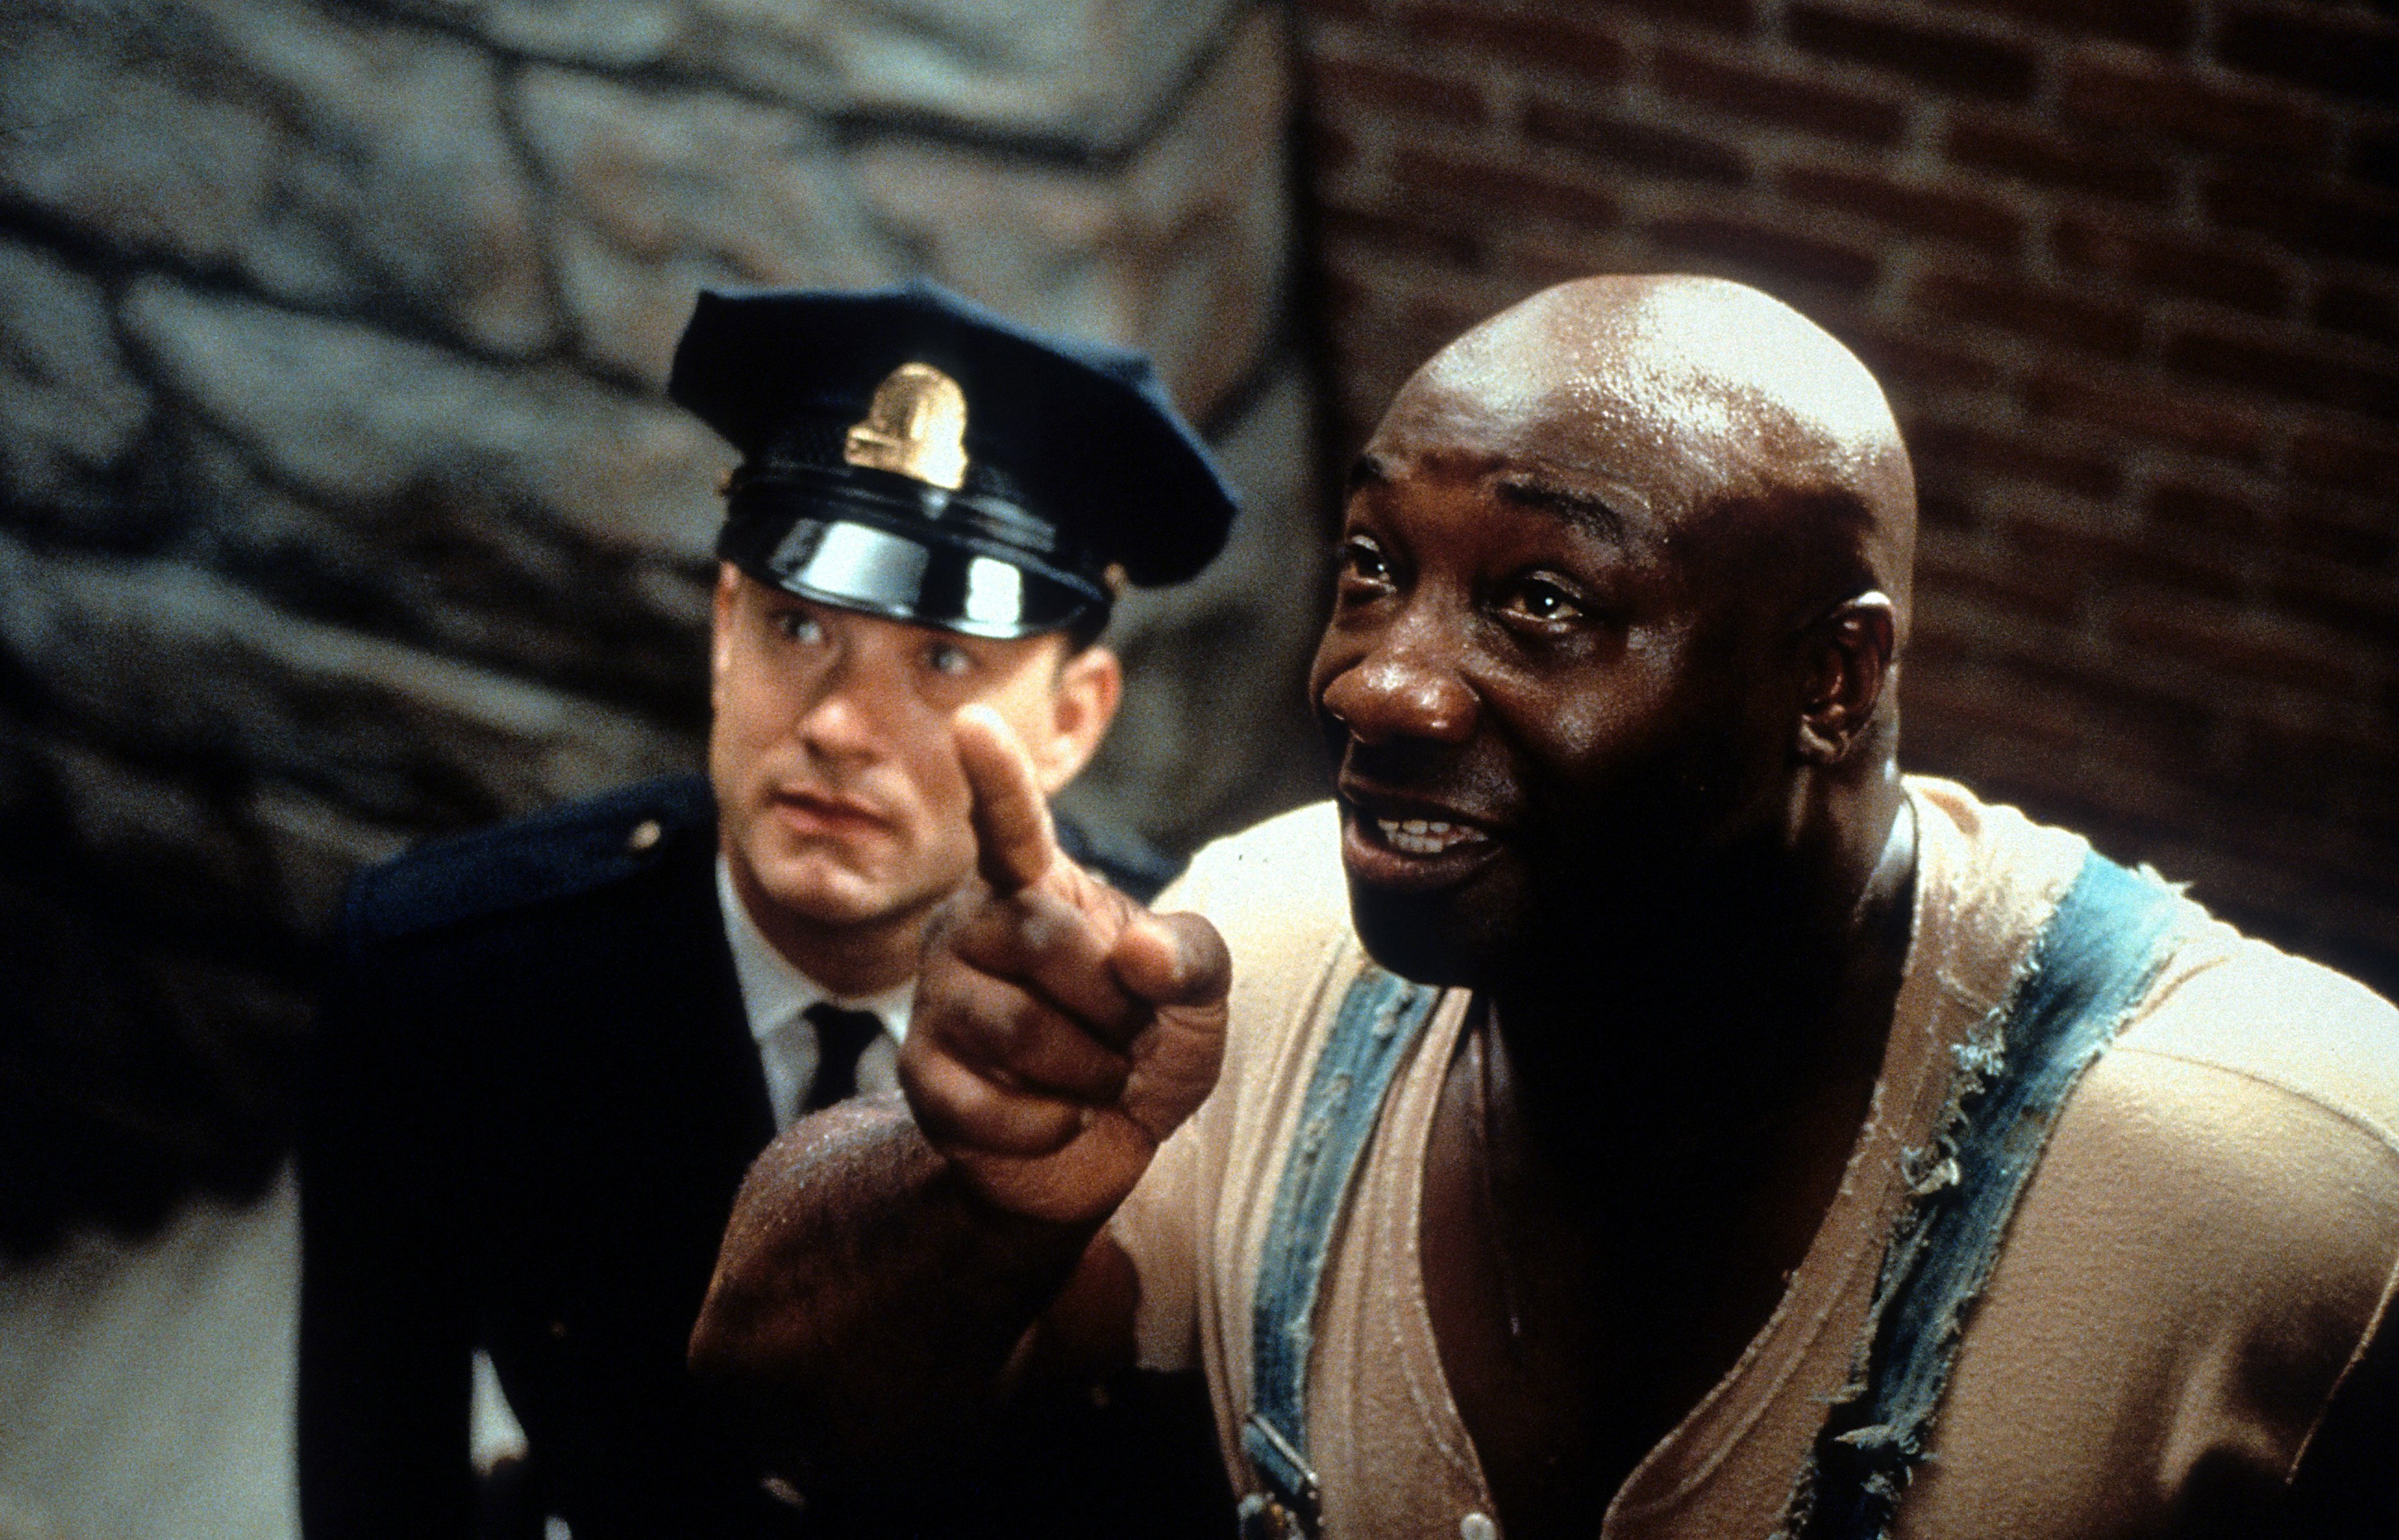 Tom Hanks is guided by Michael Clarke Duncan in a scene from the film 'The Green Mile', 1999 | Photo: Getty Images